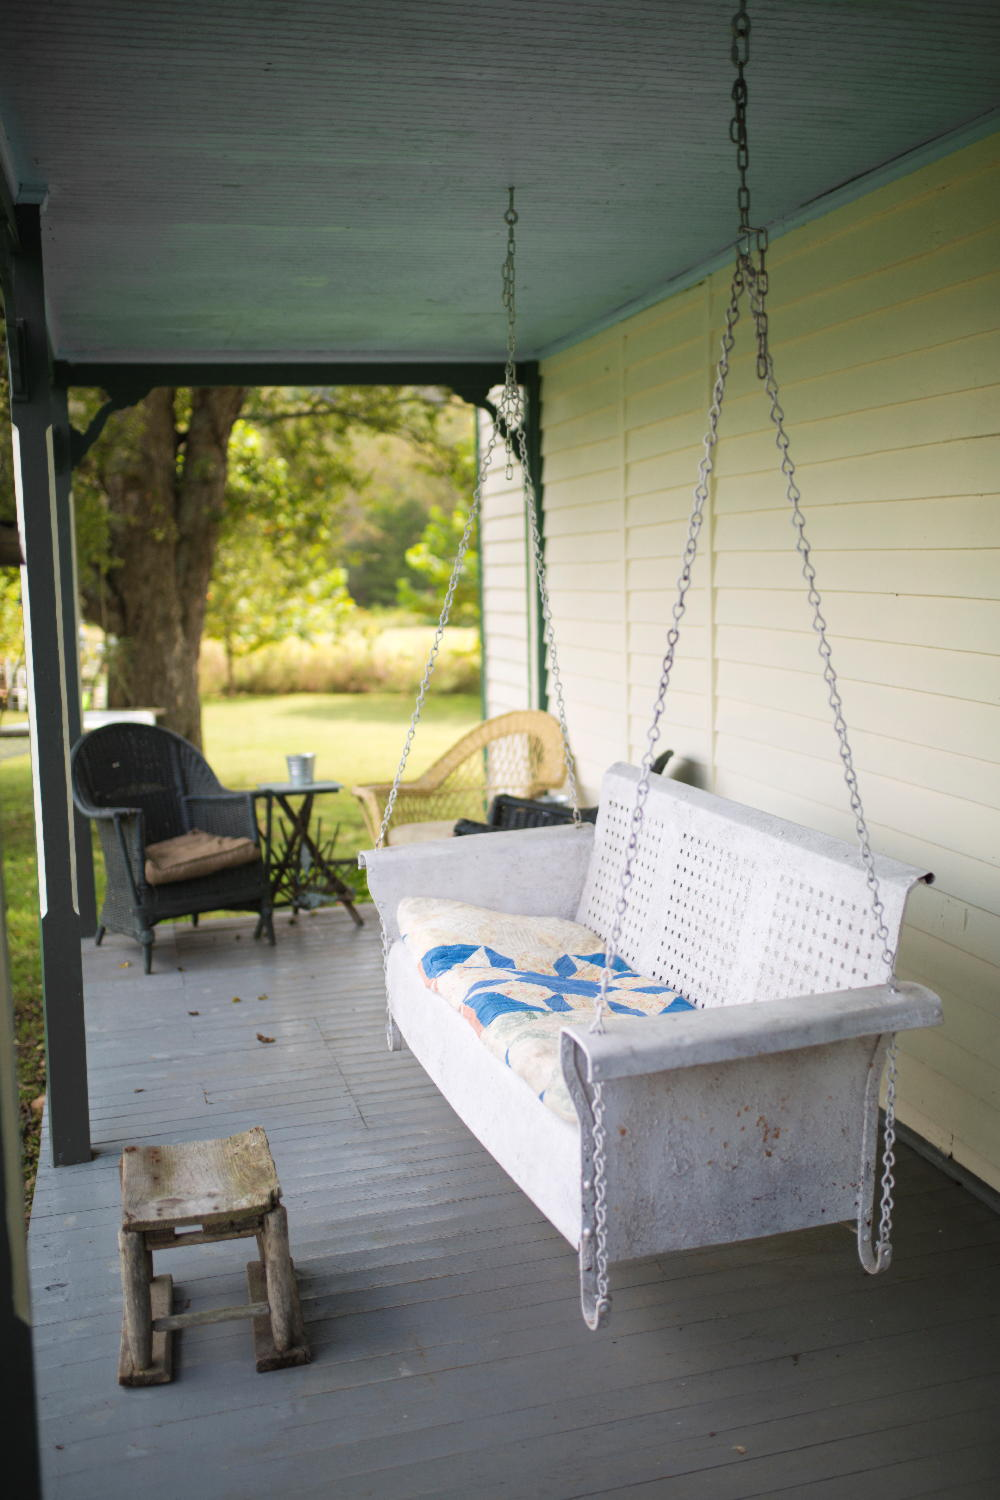 front porch swing.jpg